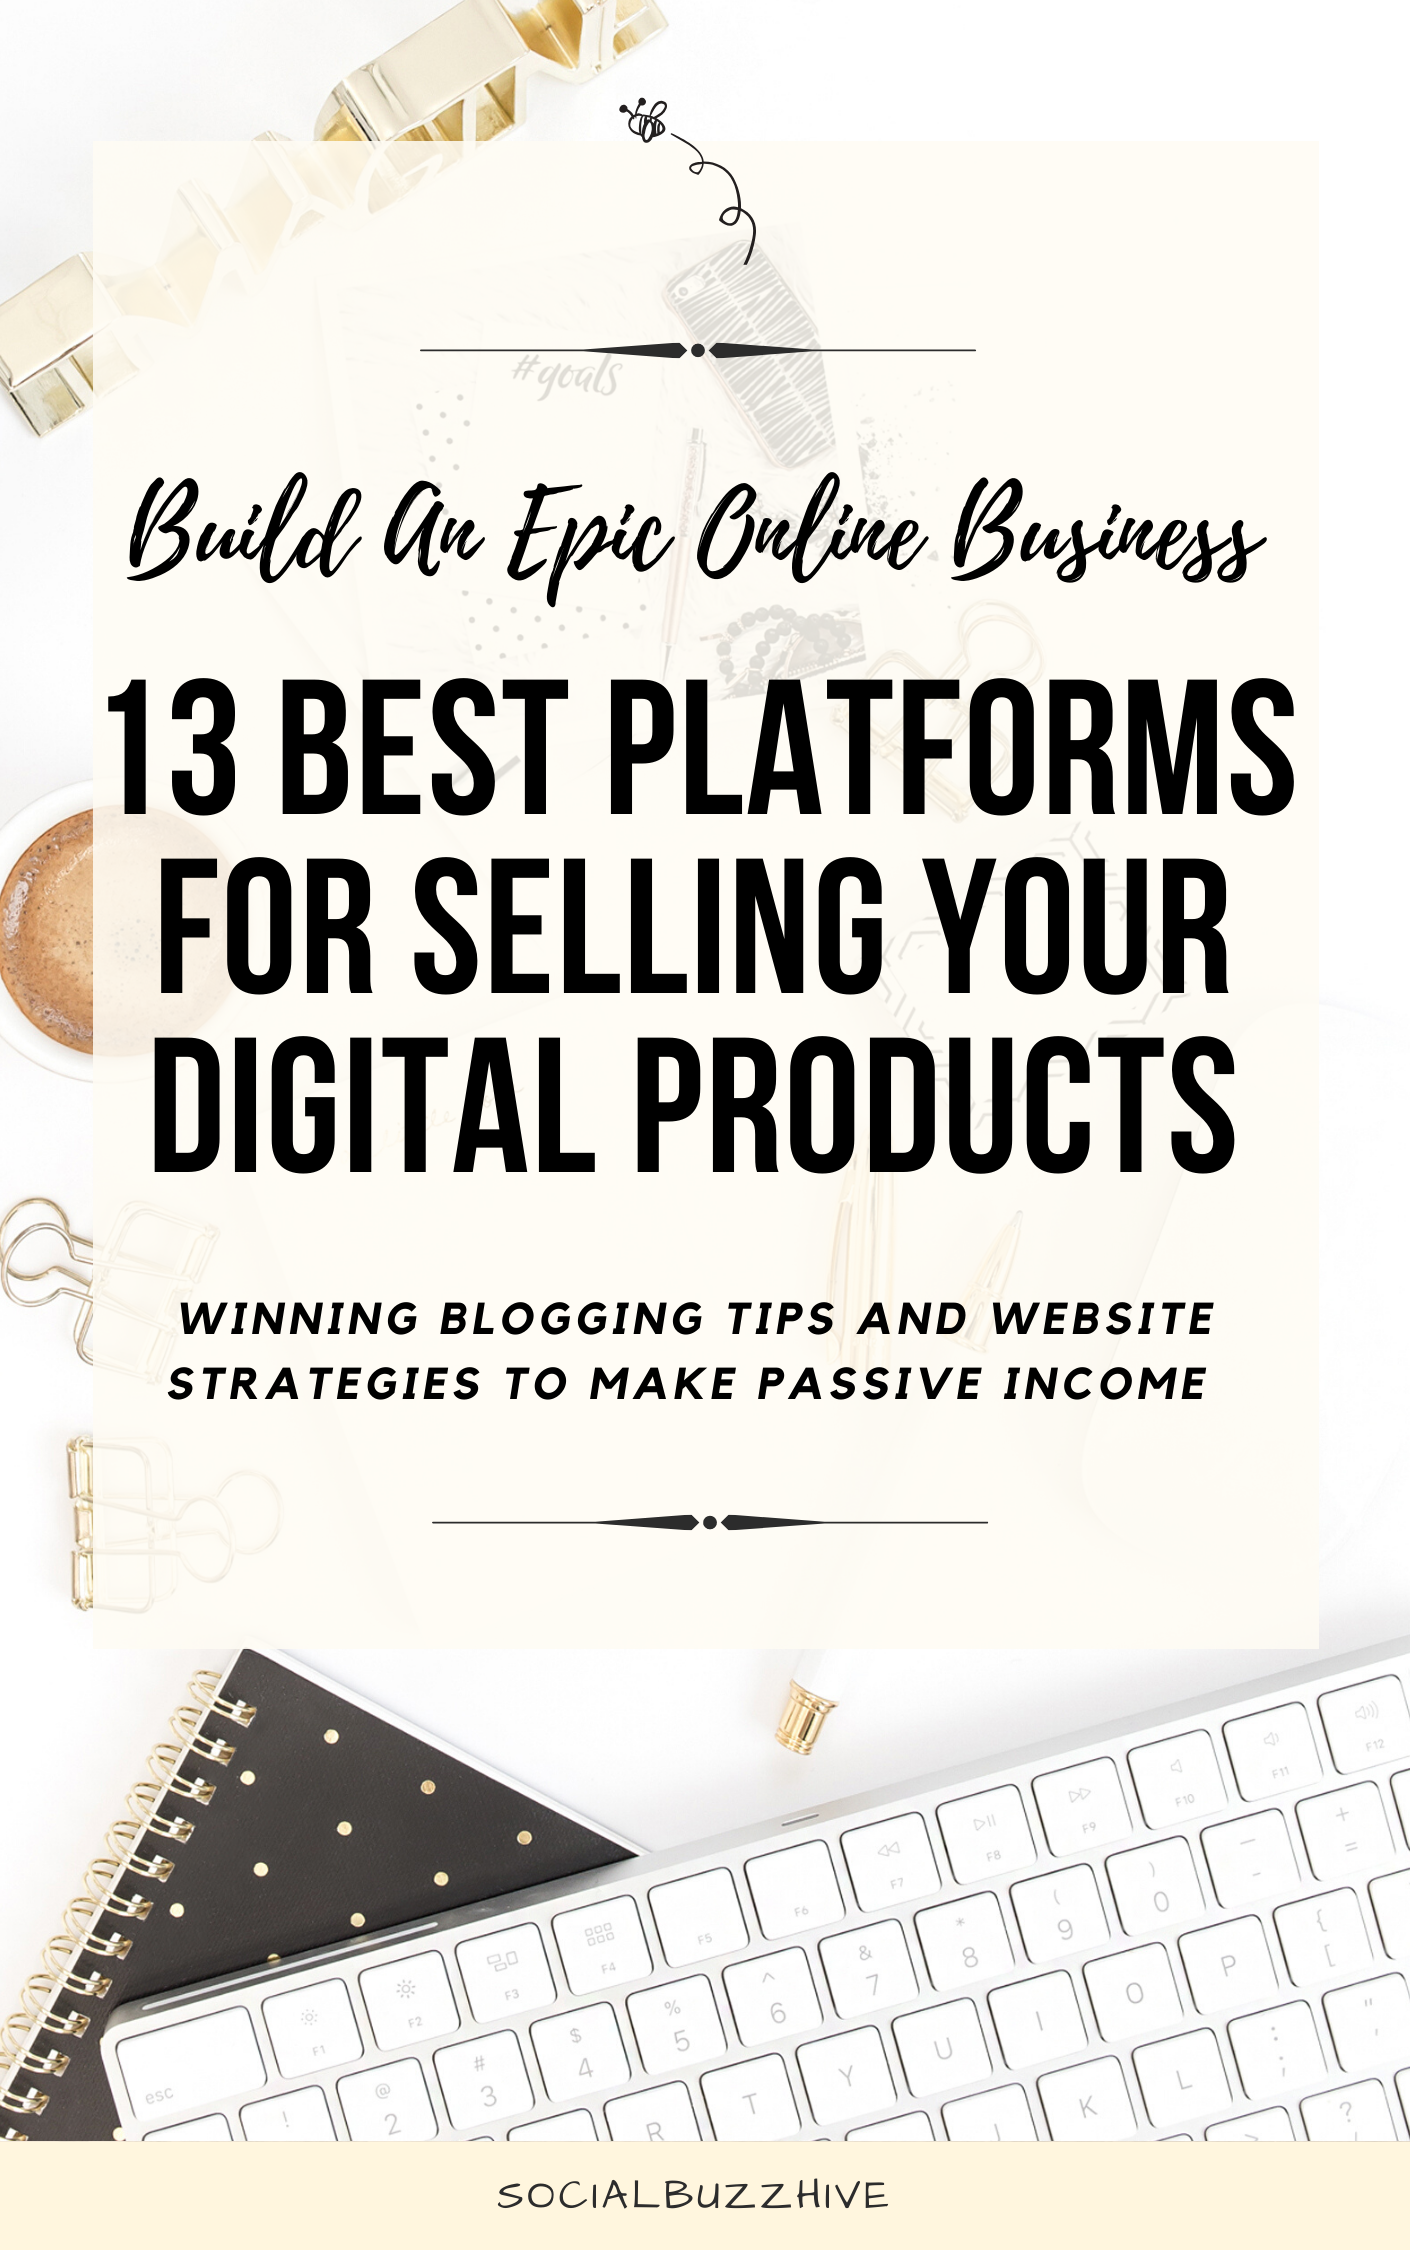 13 best platforms for selling digital products